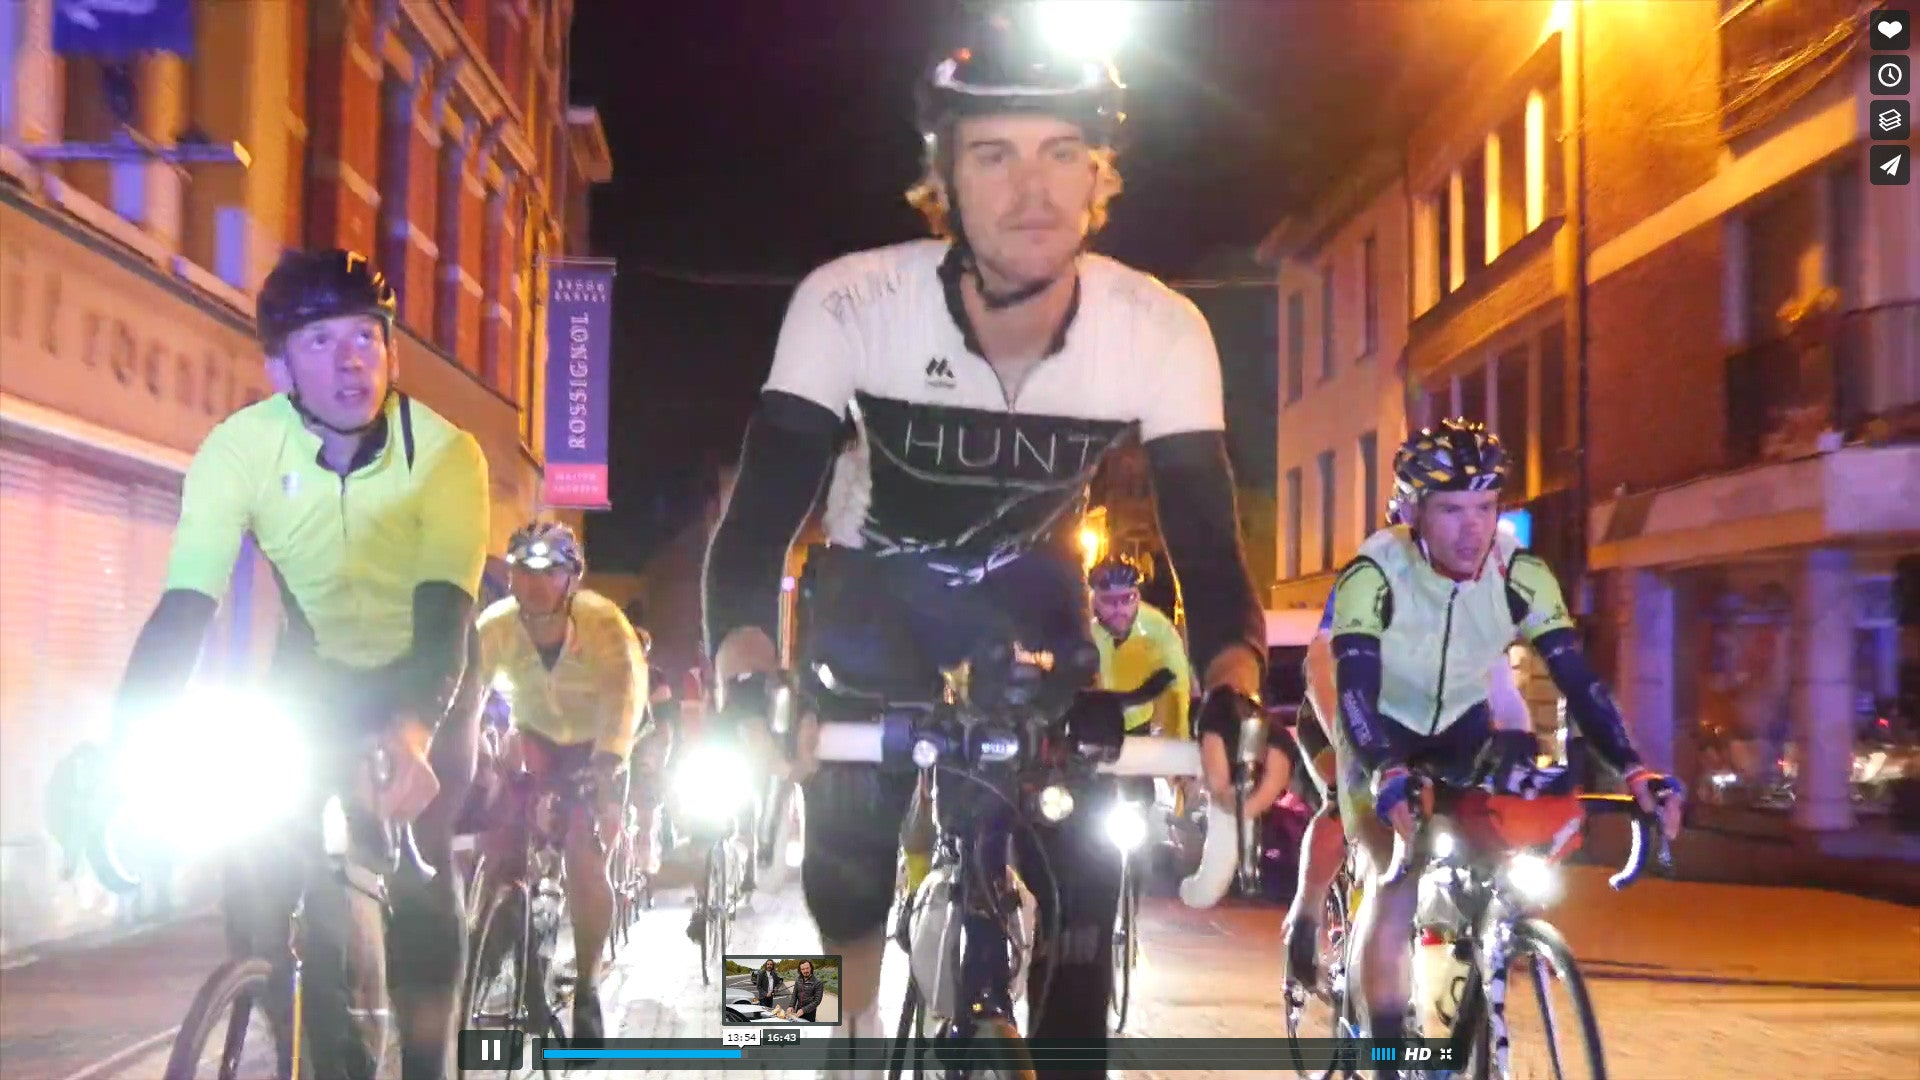 THE TRANSCONTINENTAL RACE STARTS TODAY 10PM - DOT WATCHING ADDICTION!